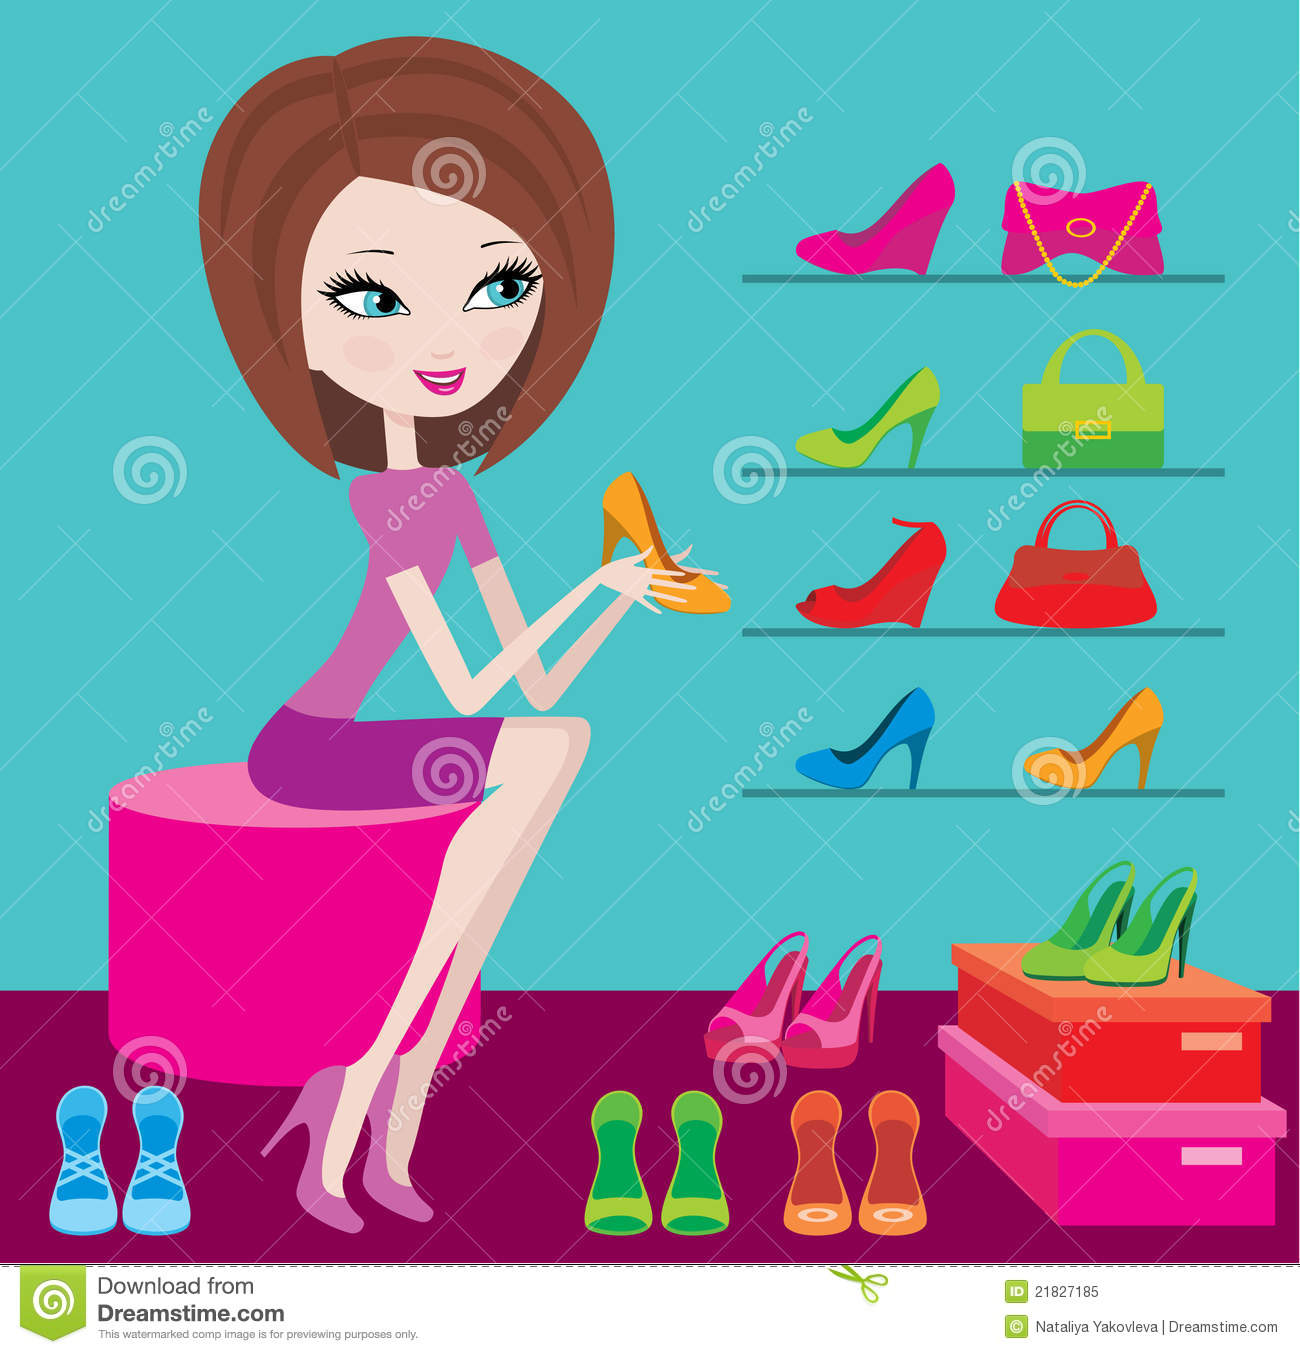 Royalty Free Stock Photo: Shop of female footwear